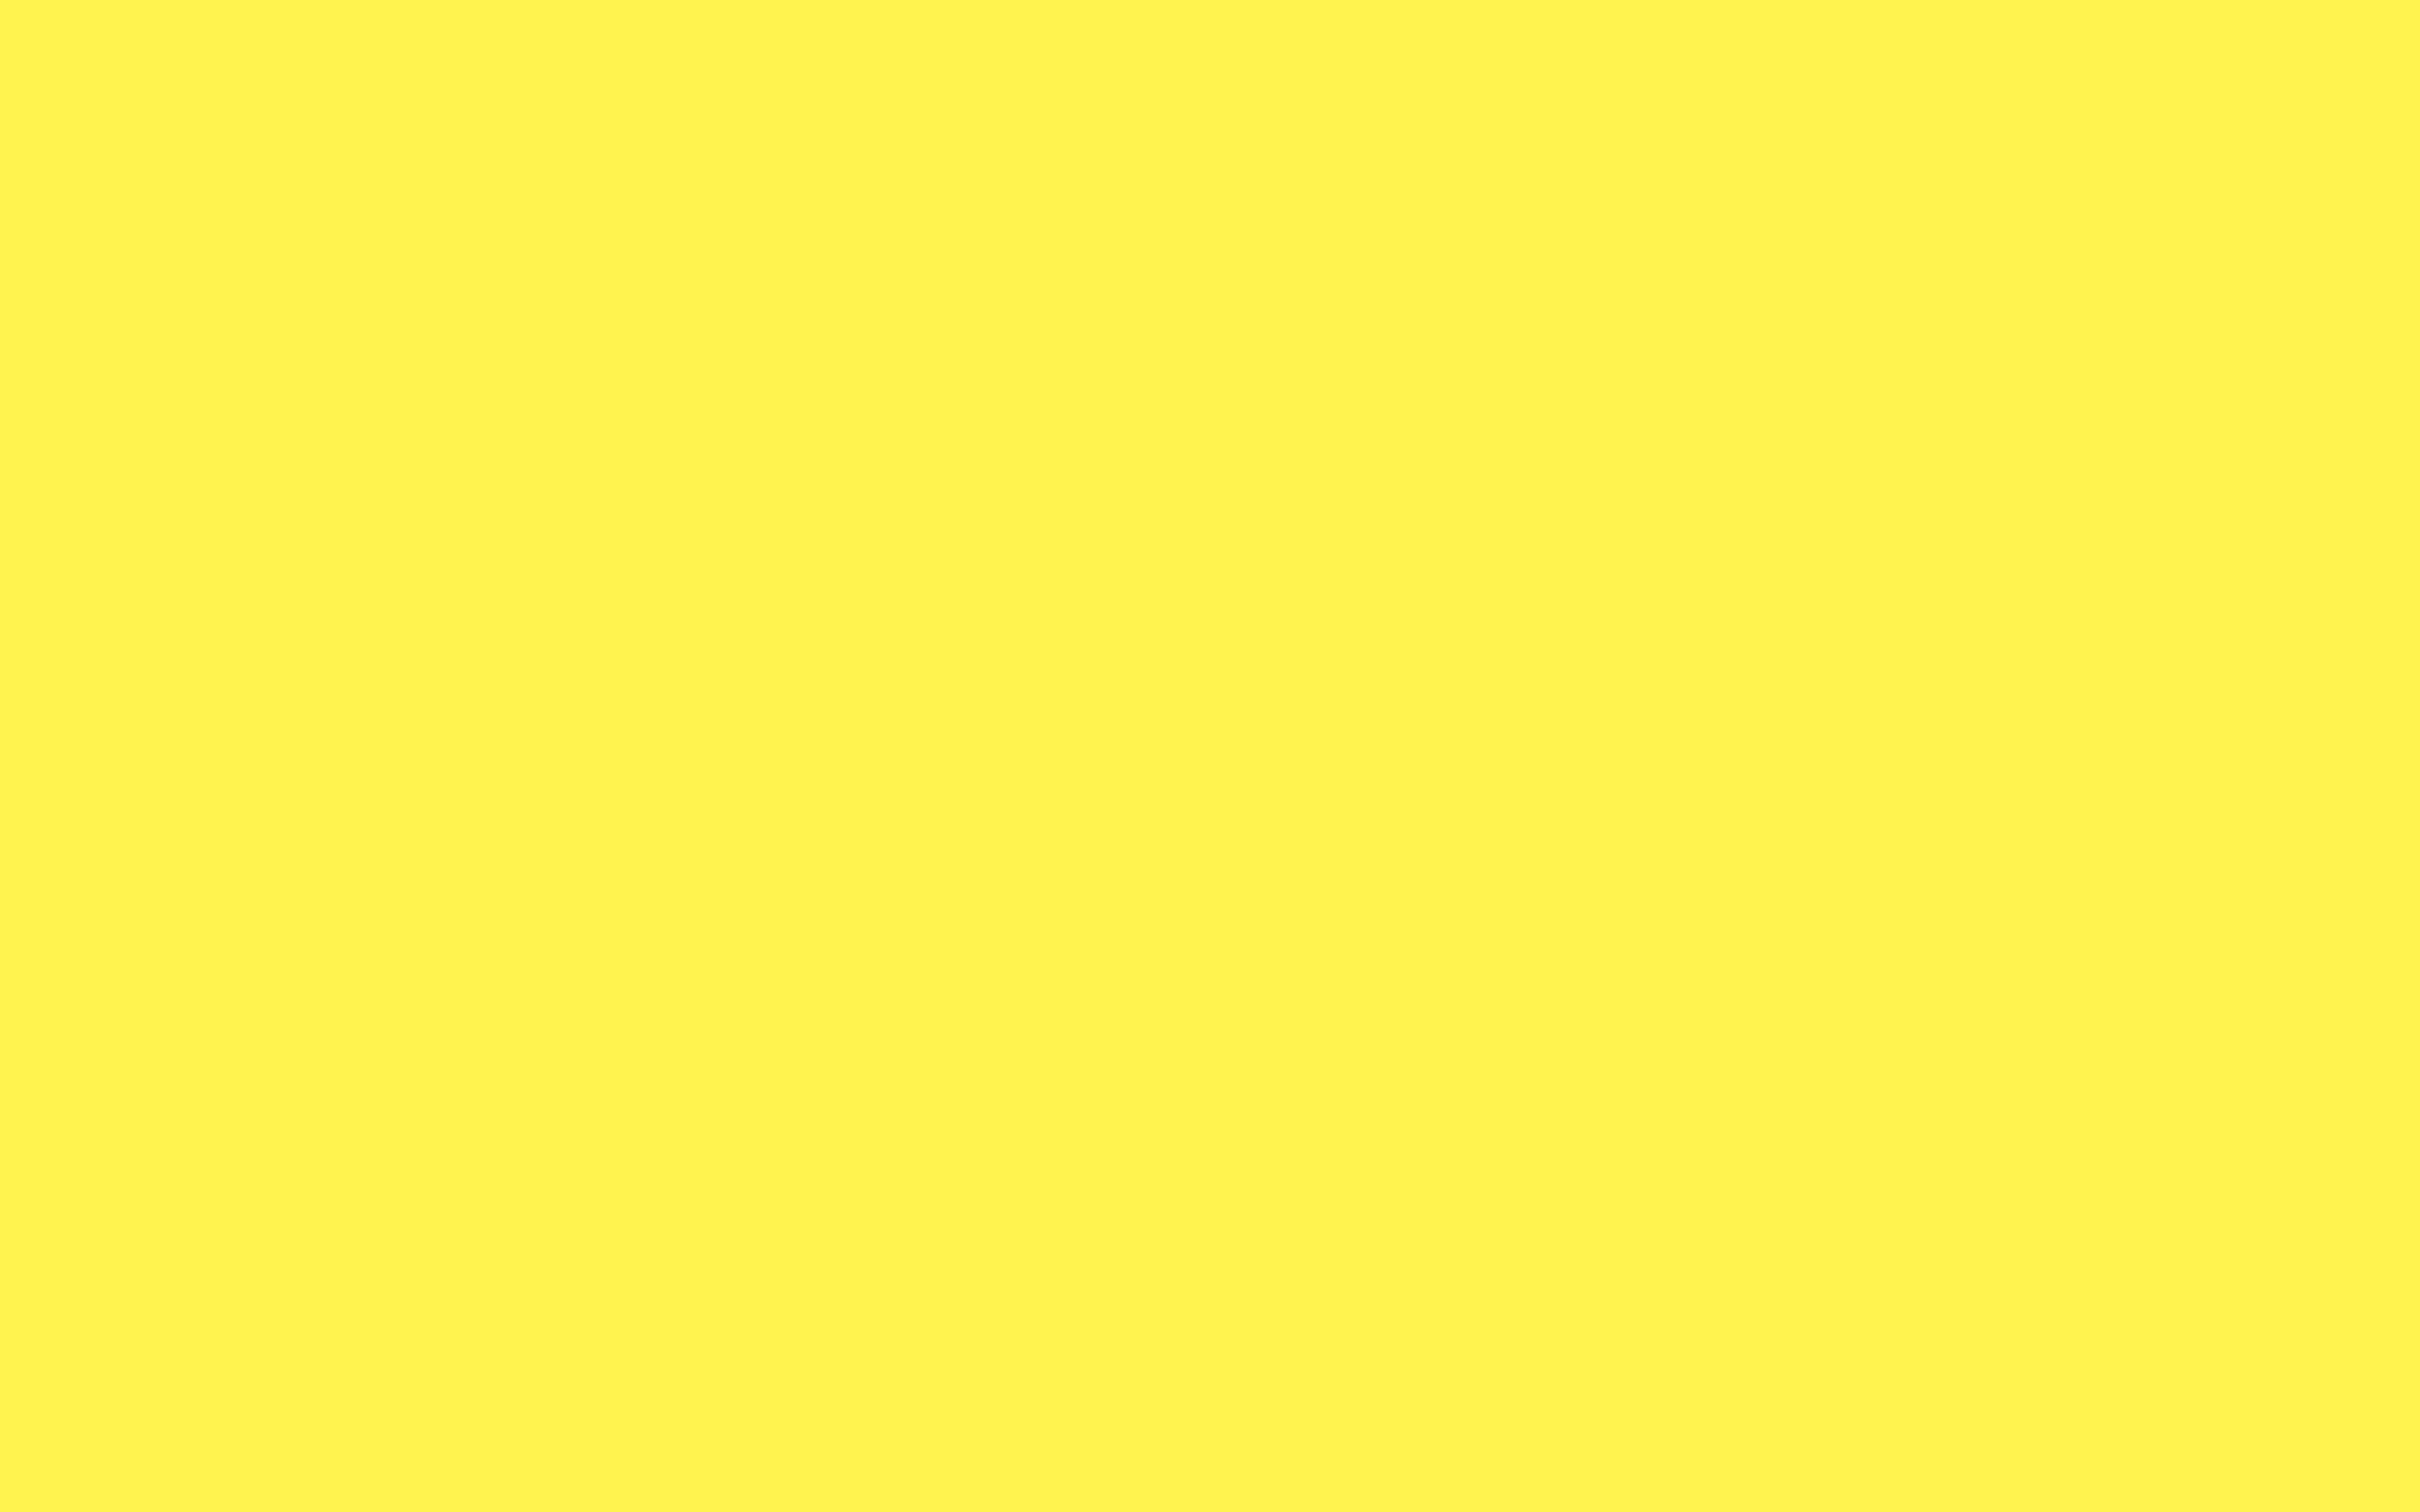 2560x1600 Lemon Yellow Solid Color Background